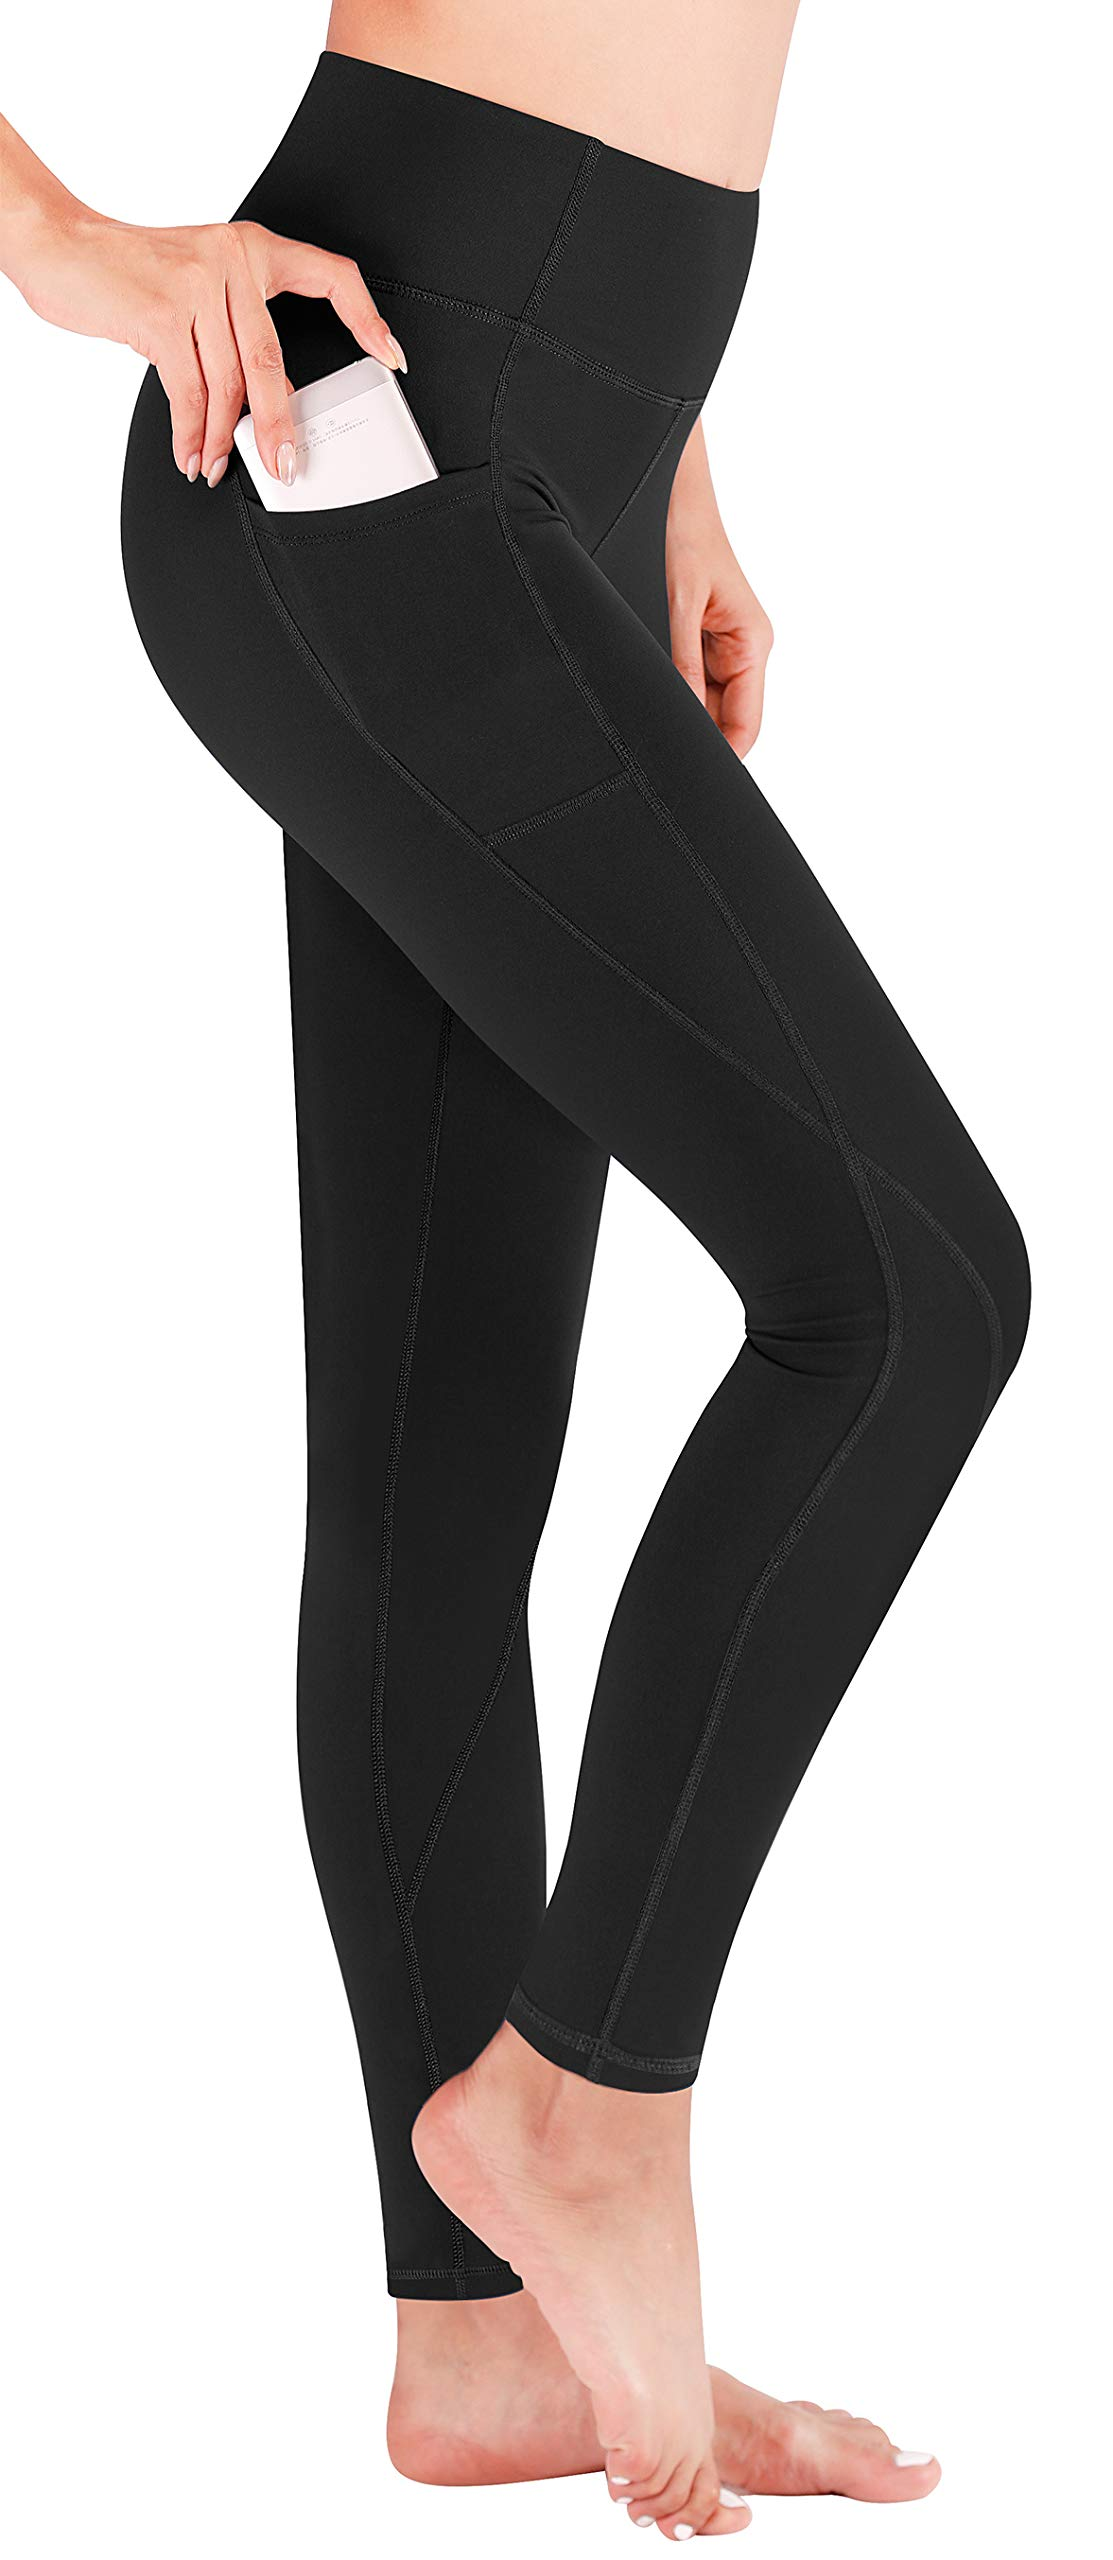 898aeb51f4 ... full-money-back warranty for all Heathyoga yoga pant. If you have any  questions or concerns, please contact us by email and we will be more than  happy ...